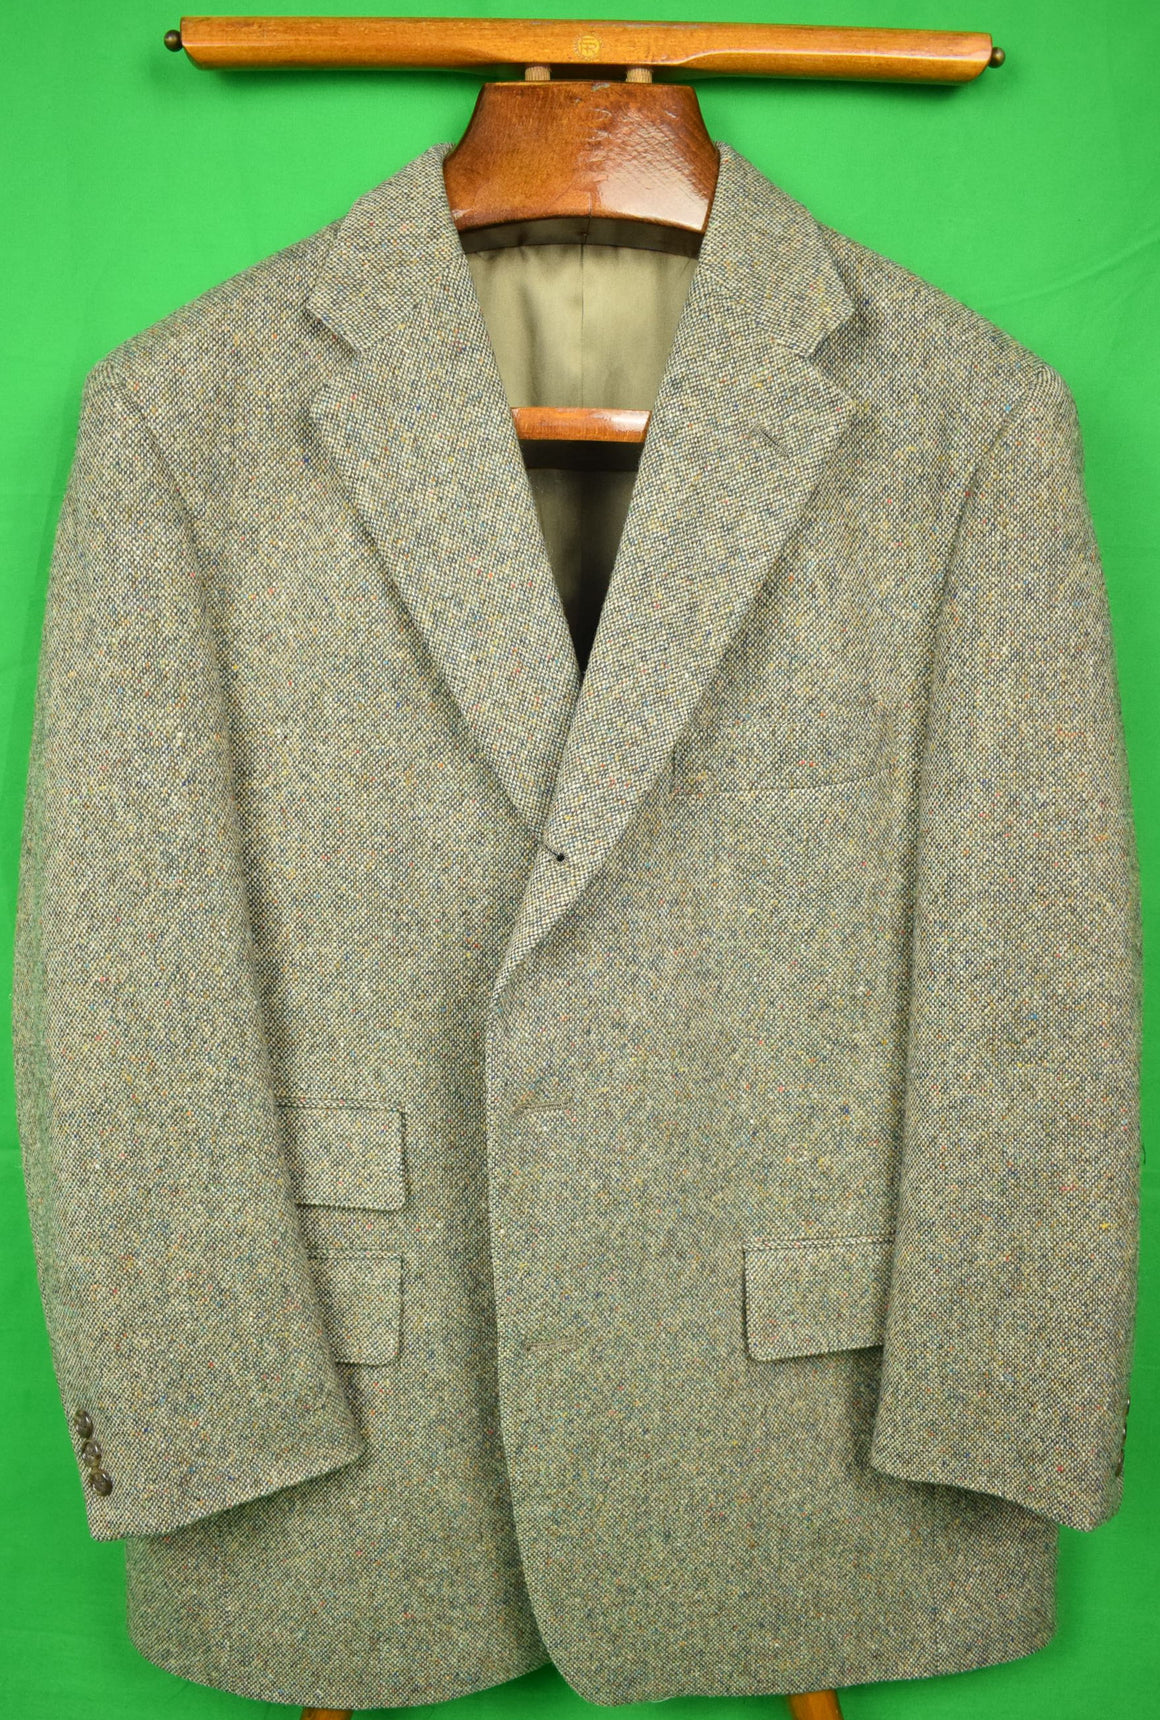 "J Press Donegal Tweed 3Pc Wool Suit Sz: 44R 3 Button/ w/ Lapel Vest & Pleated Trouser Sz: 39""W"